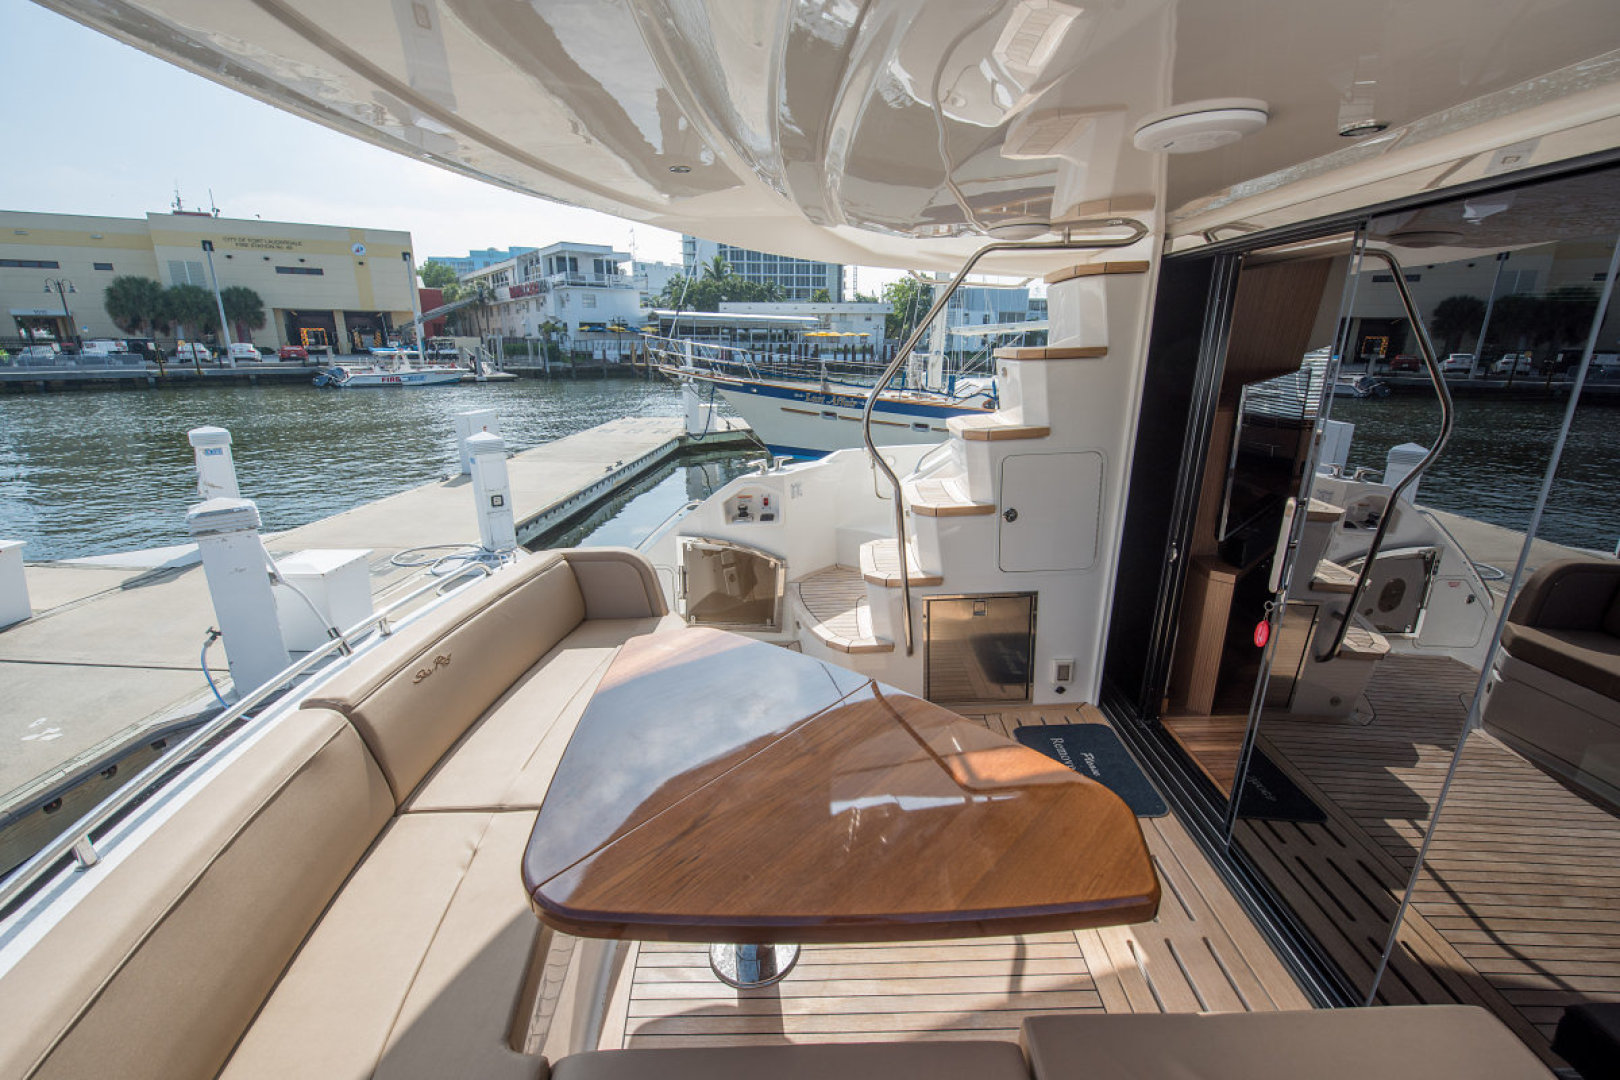 Sea Ray-L590 Fly 2016-2016 Sea Ray L590 Fly Ft. Lauderdale-Florida-United States-1284601 | Thumbnail